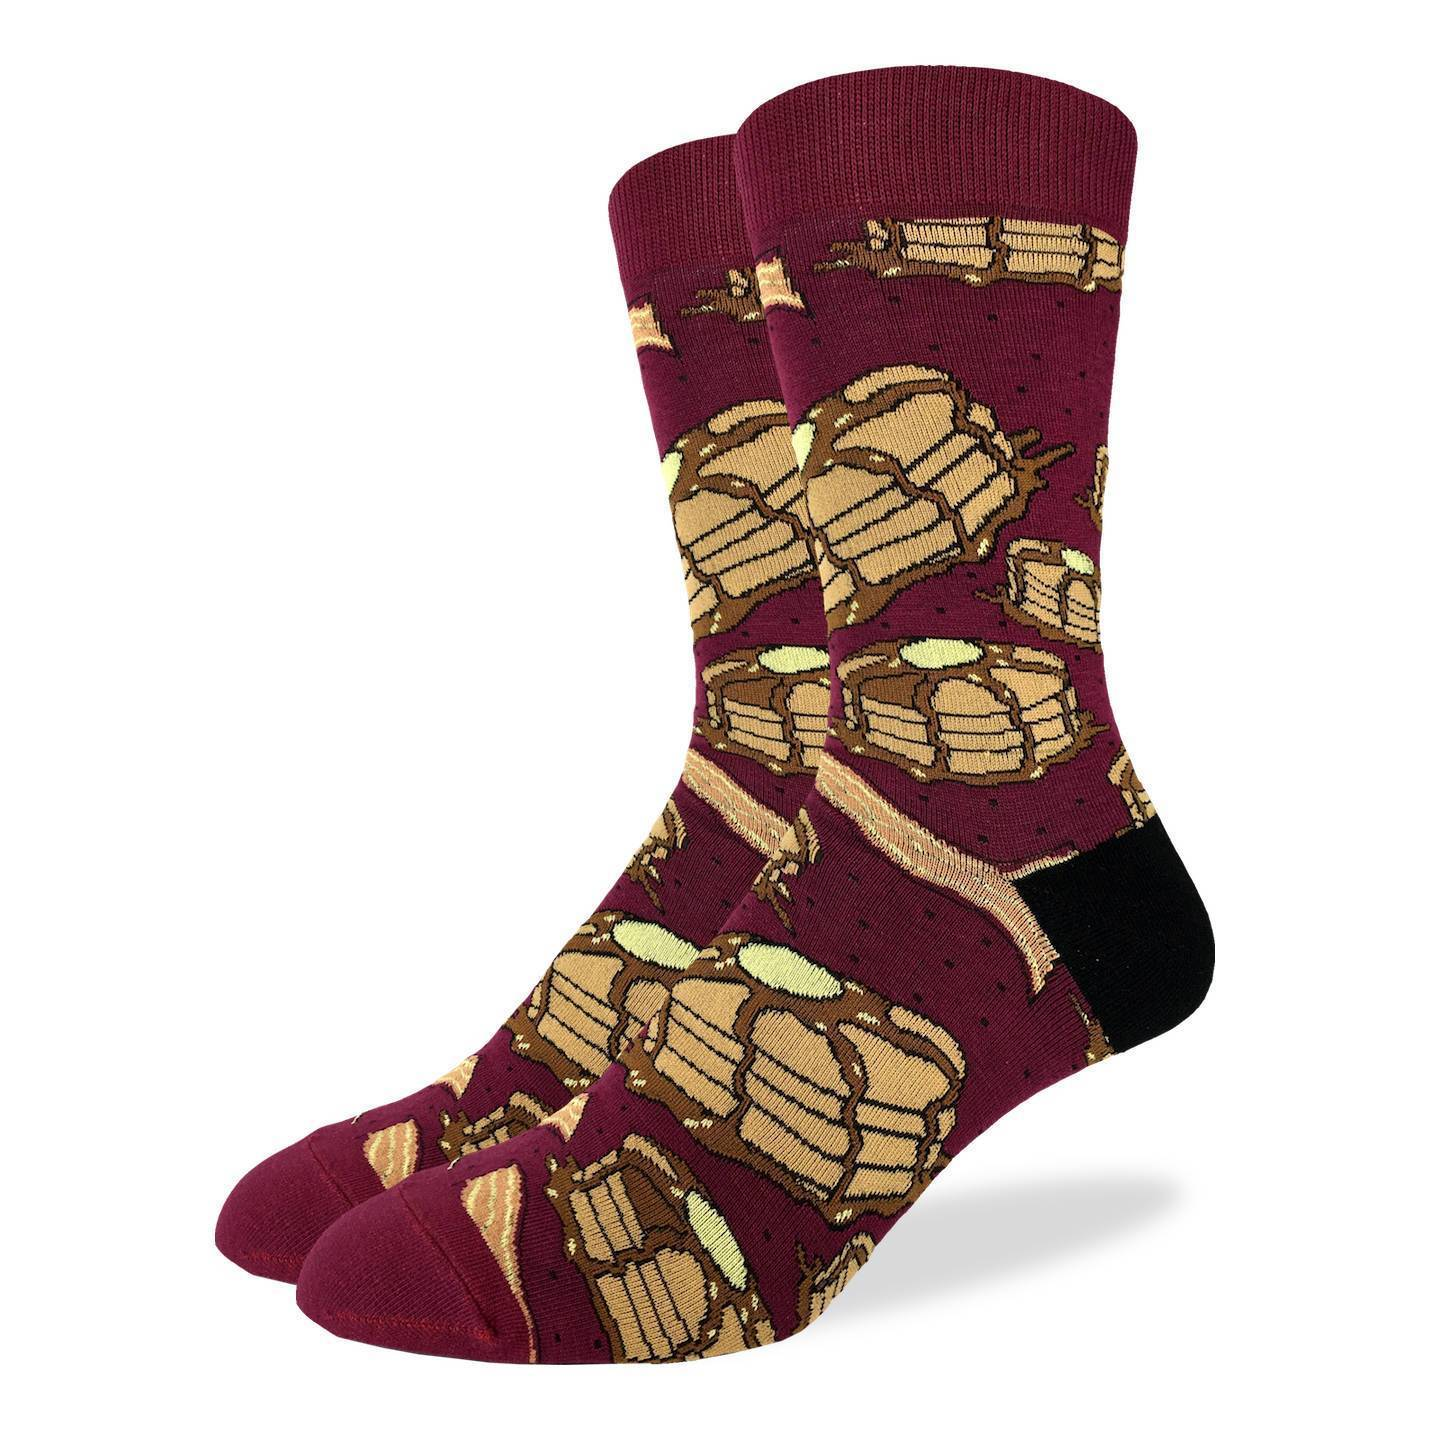 Men's Pancakes with Bacon Socks - Good Luck Sock